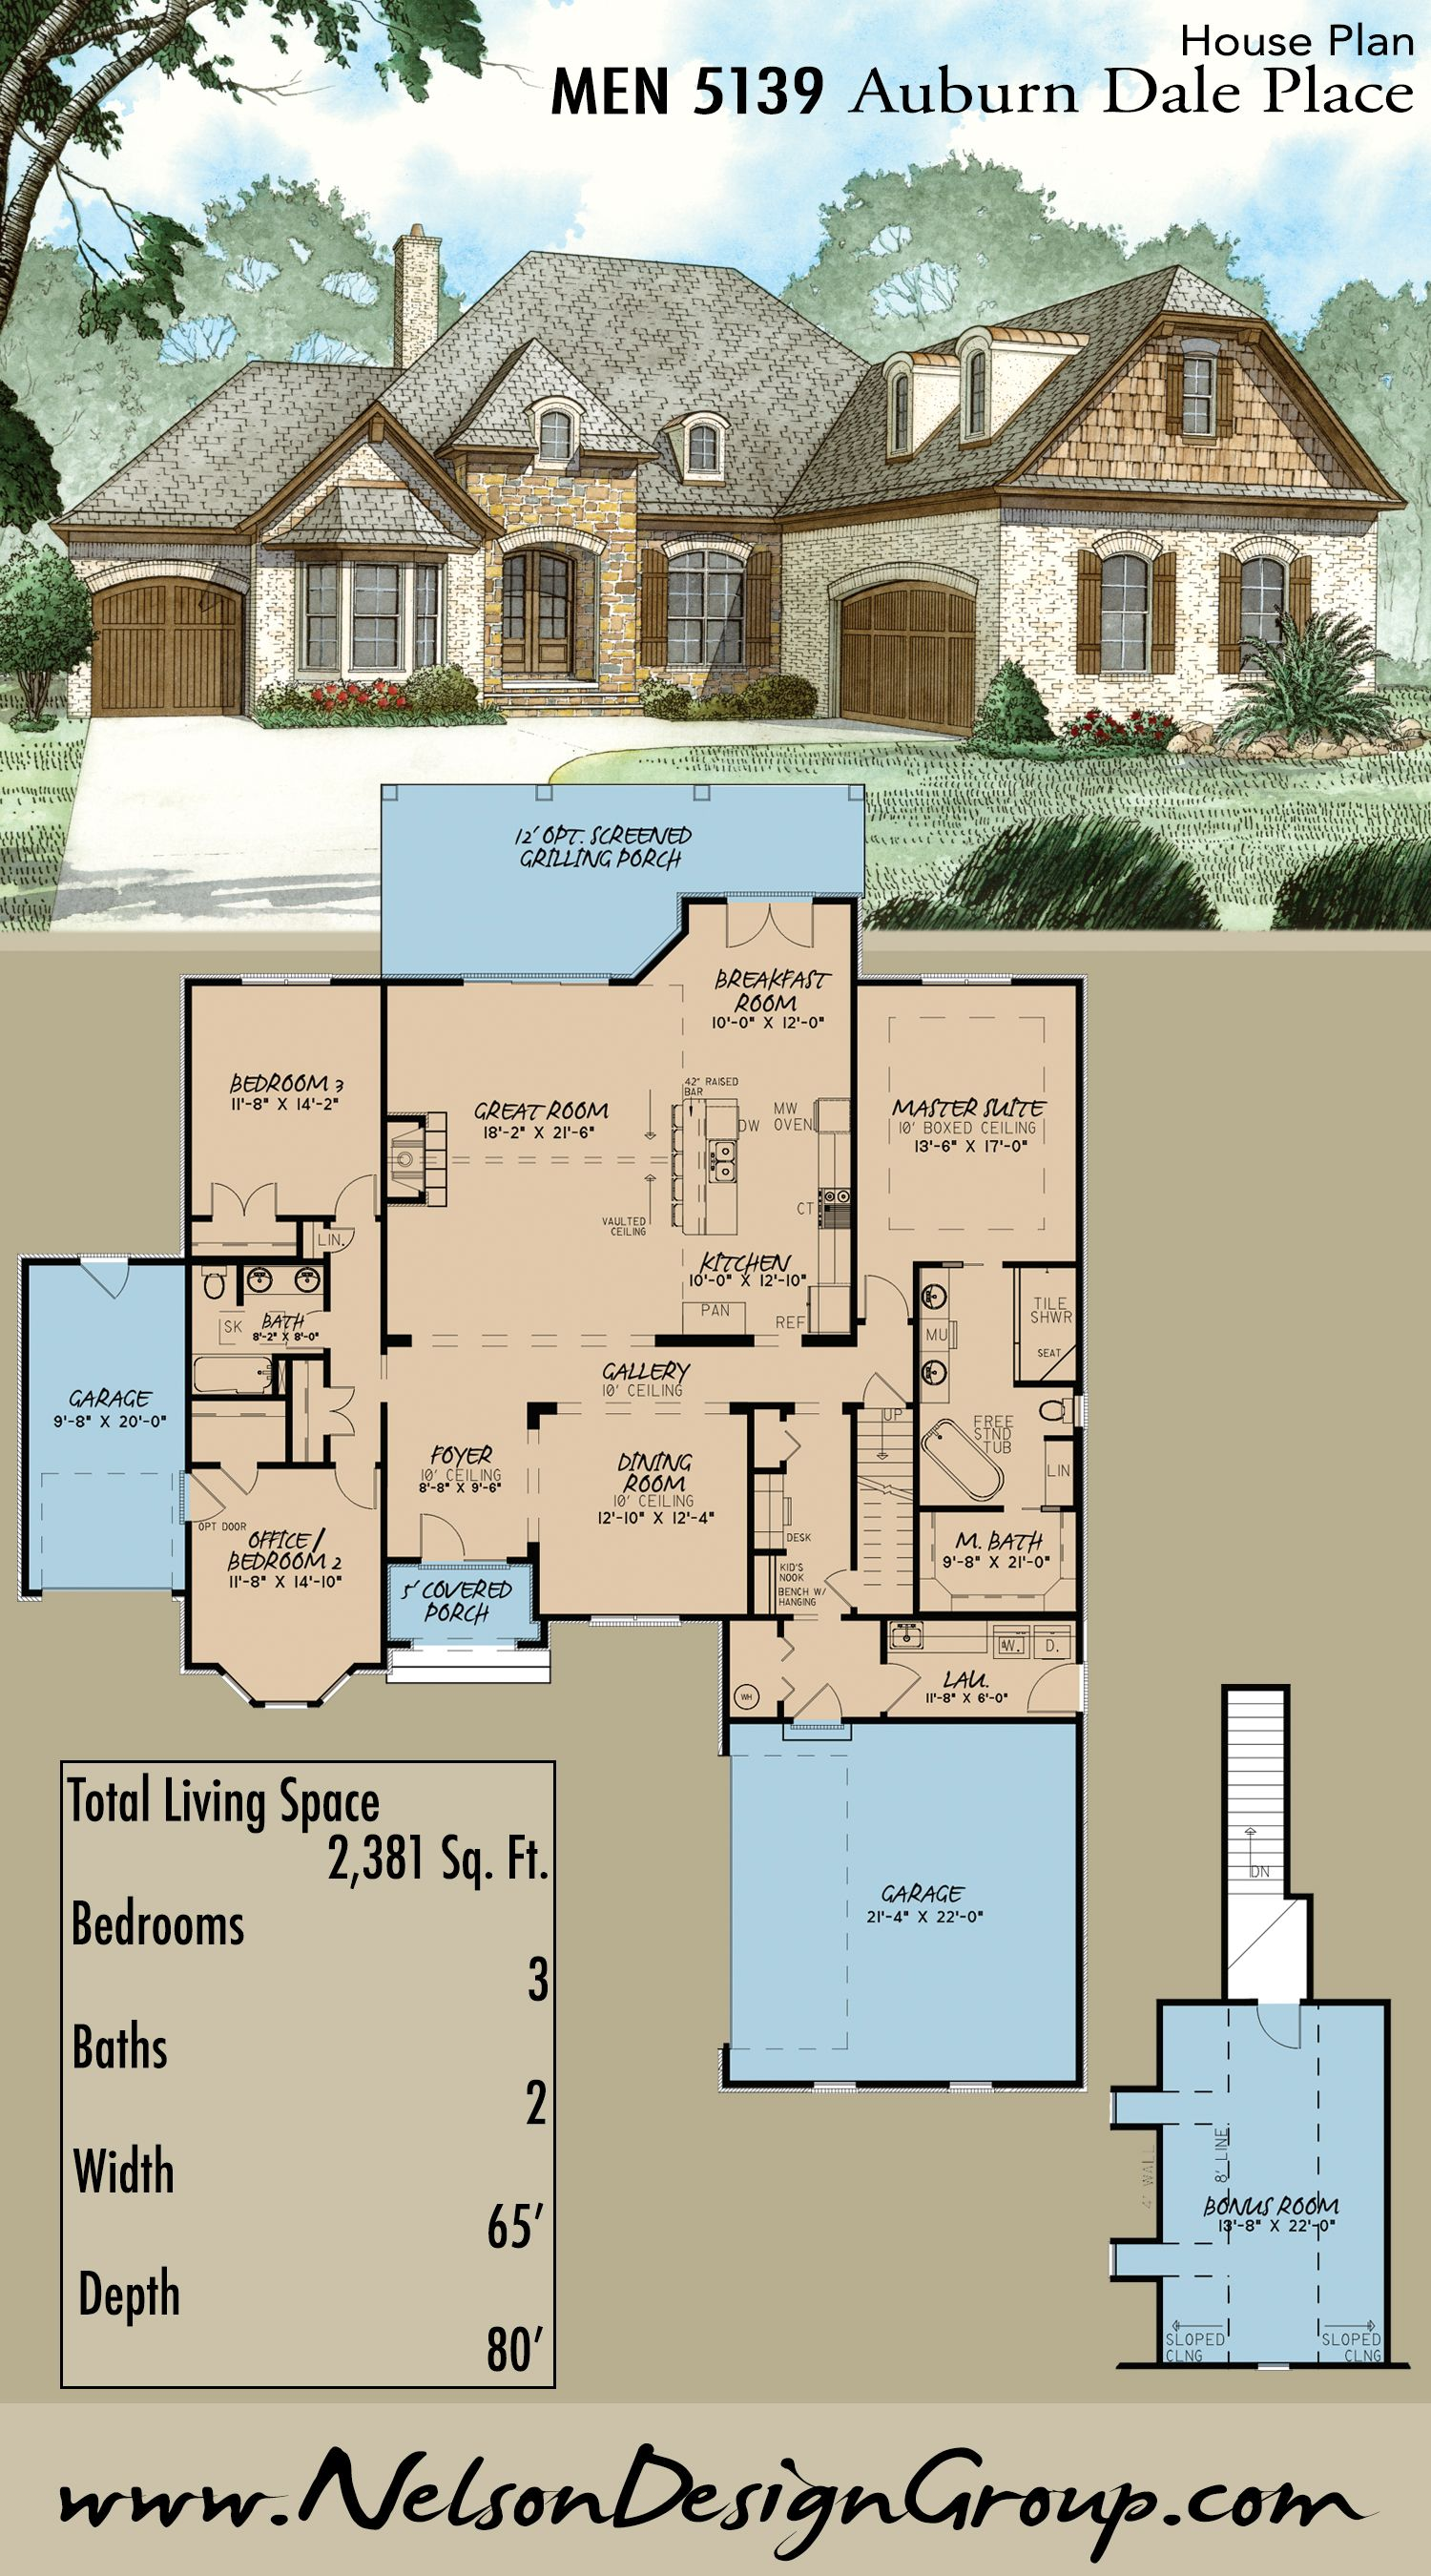 Houses House Home Homes Homeplans Homeplan Houseplan Houseplans European Nexthome Homesweethome Dream House Plans House Plans European House Plans